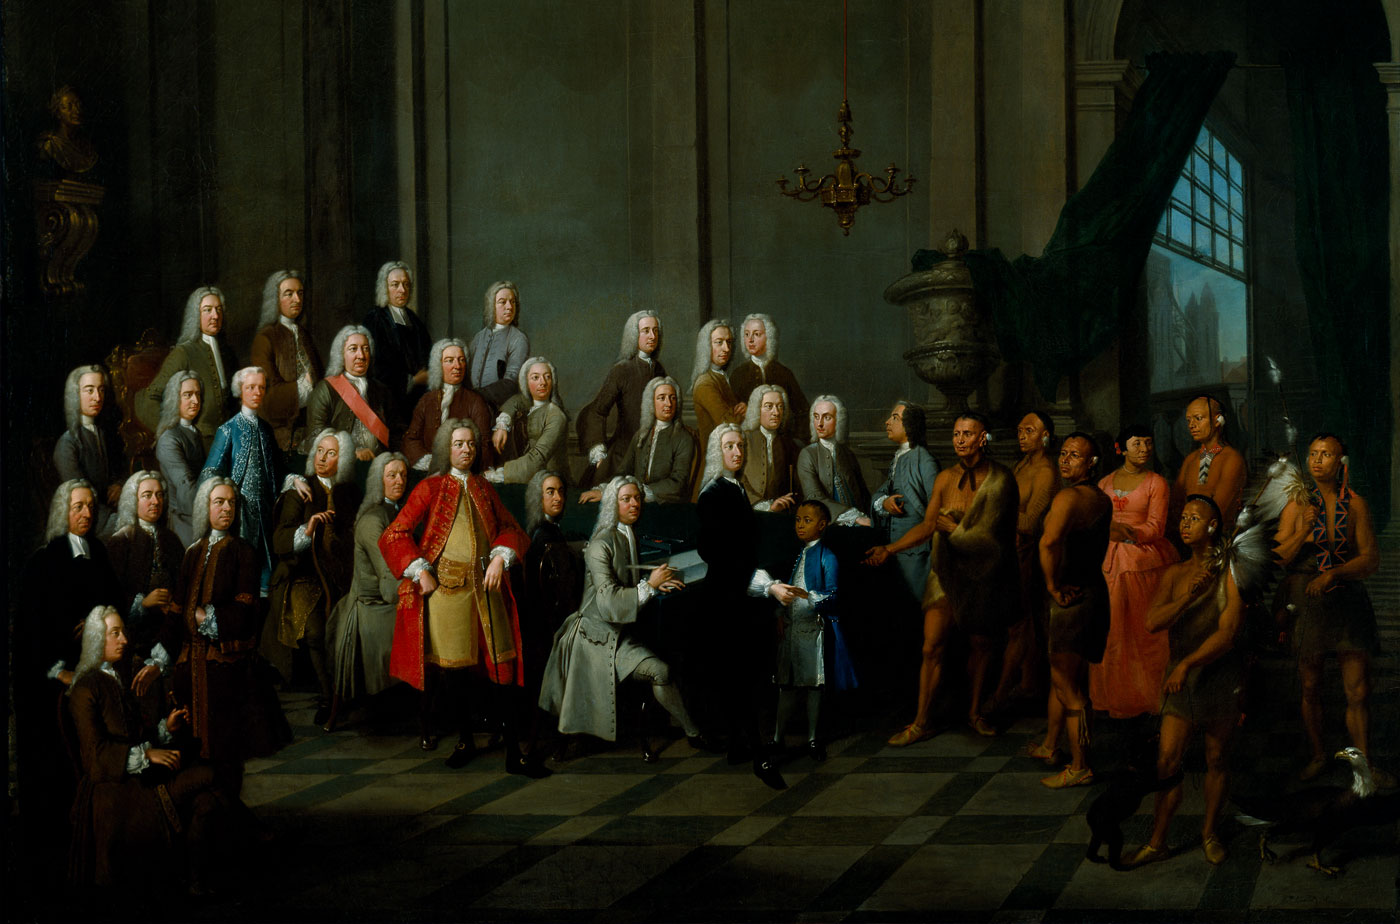 Audience Given by the Trustees of Georgia to a Delegation of Creek Indians. by William Verelst, gift of Henry Francis du Pont, 1956, Courtesy, Winterthur Museum